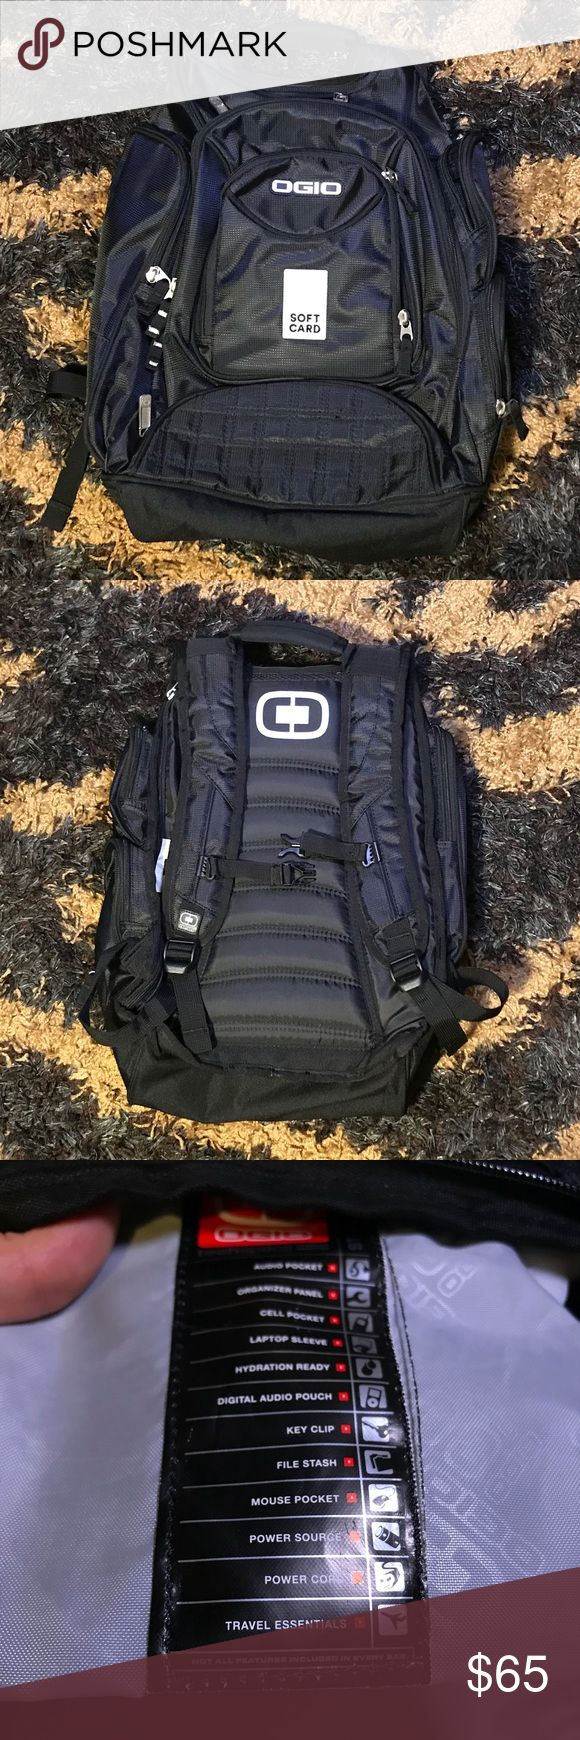 NWOT Ogio Backpack Unused and in perfect condition. Has more pockets and compartments than I can count. Protective carrying of your laptop with ample space for all your school, overnight, or work supplies. Great brand. High quality with excellent features. Ask any questions if you are curious to know more :) Ogio Bags Backpacks